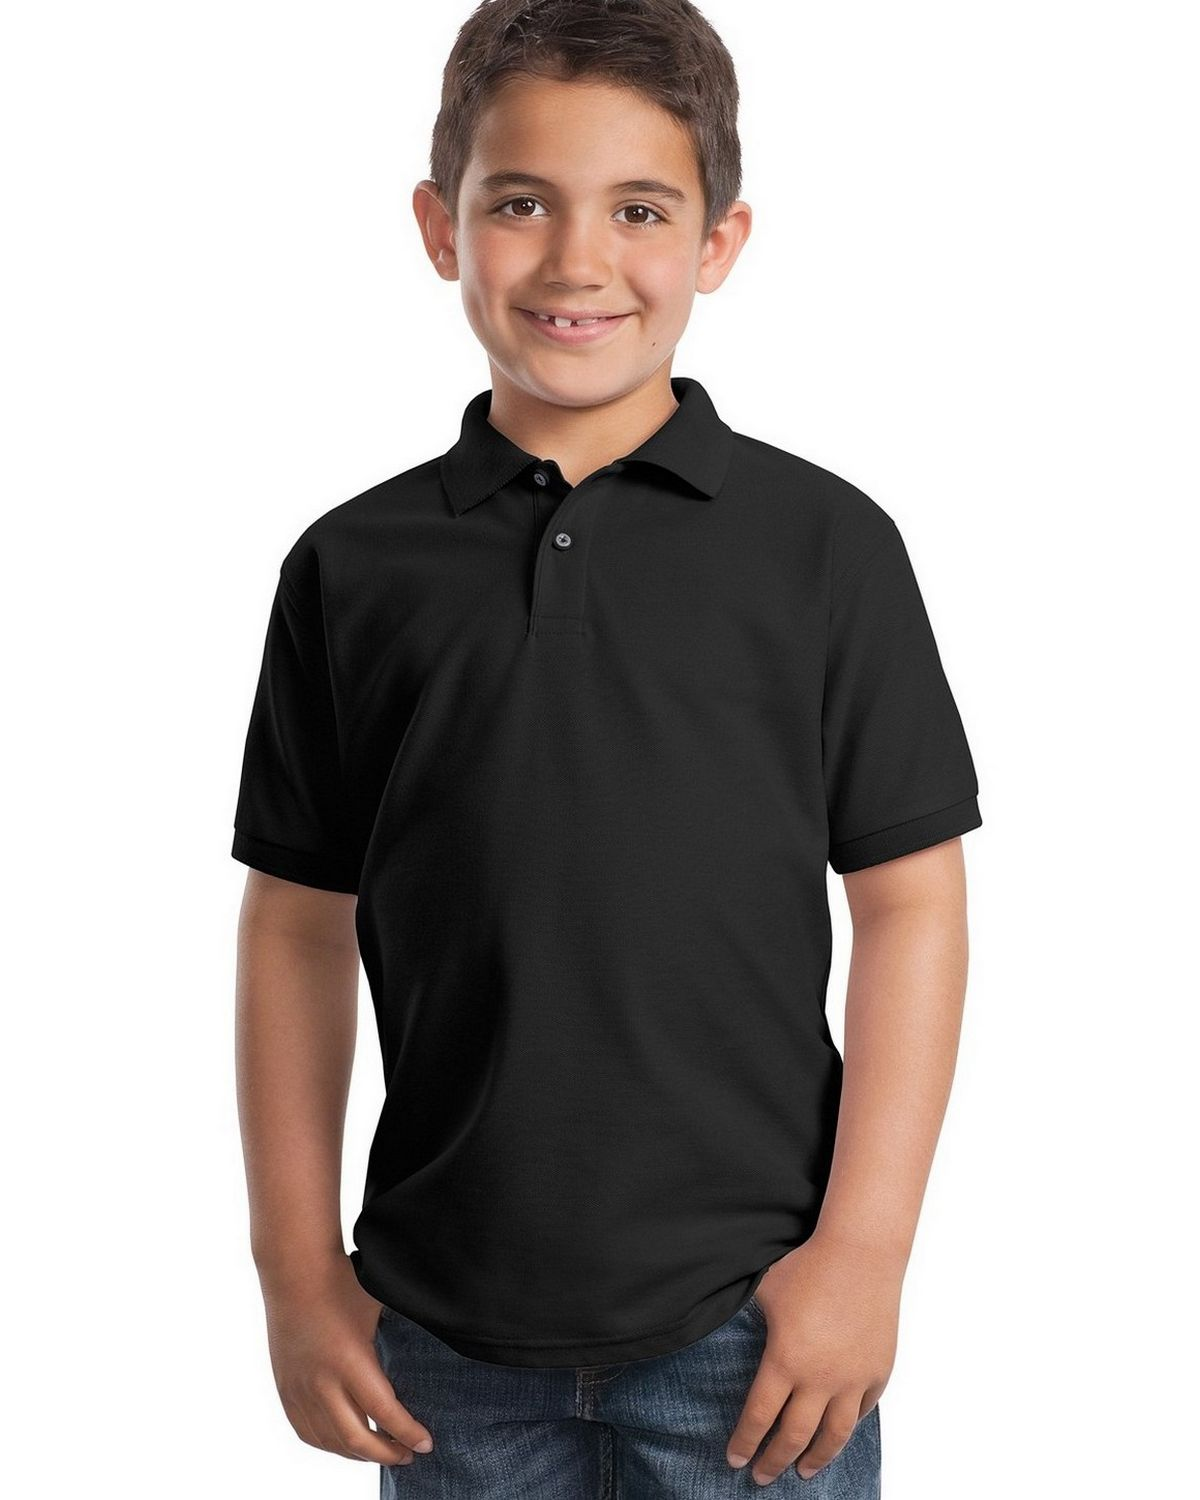 Port Authority Y500 Youth Silk Touch Polo - Black - XS #silk